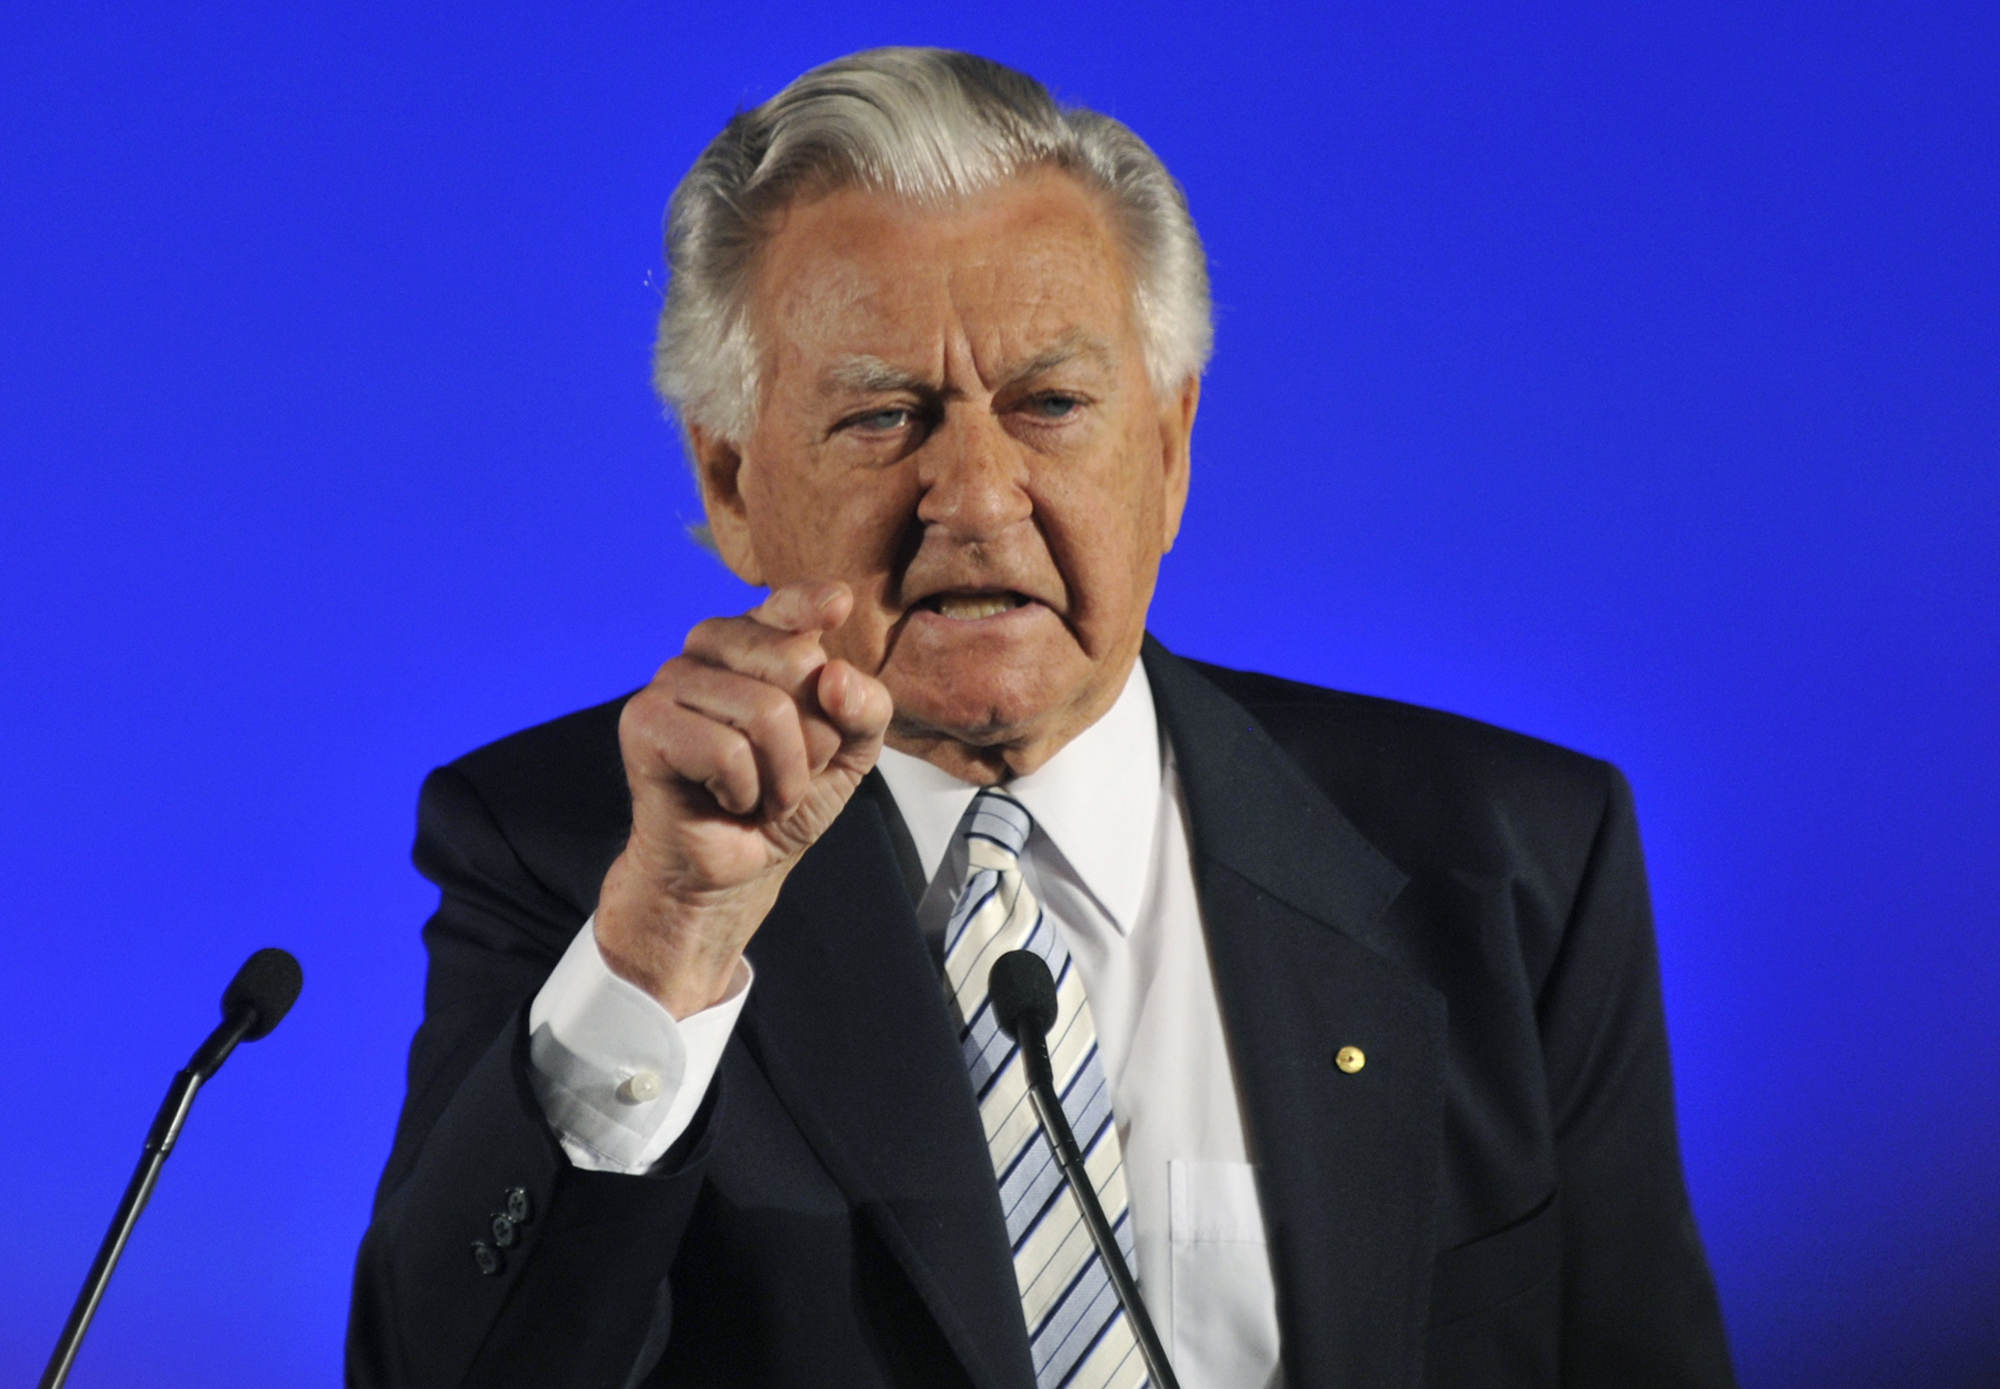 FILE - Former Prime Minister Bob Hawke speaks at the Australian Labor Party's election campaign launch in Brisbane, Aug. 16, 2010.